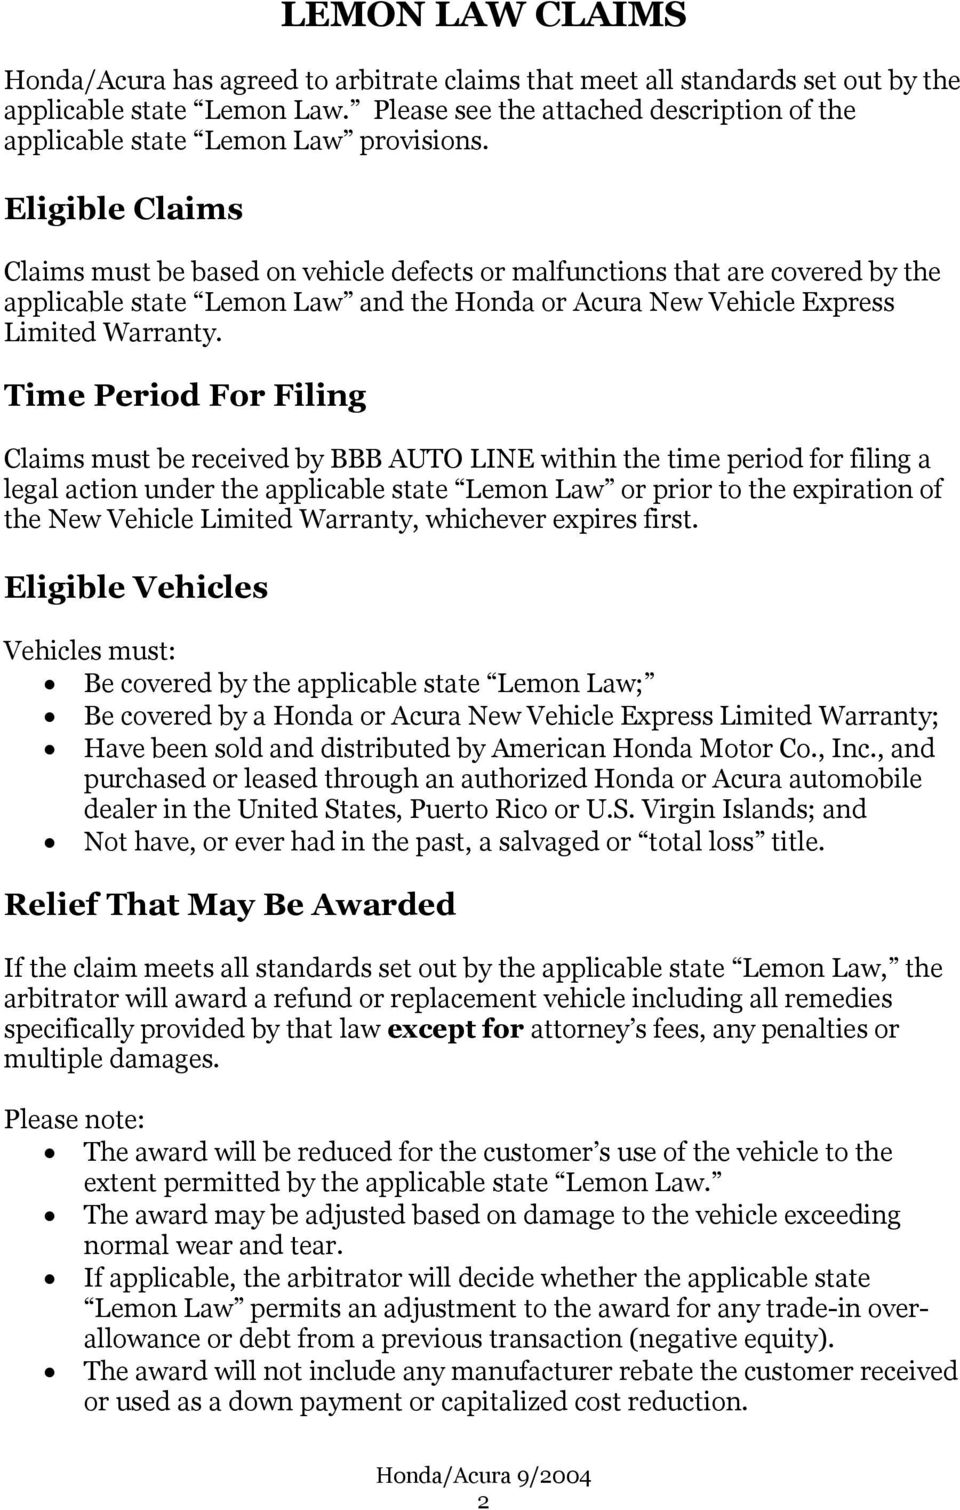 Eligible Claims Must Be Based On Vehicle Defects Or Malfunctions That Are Covered By The